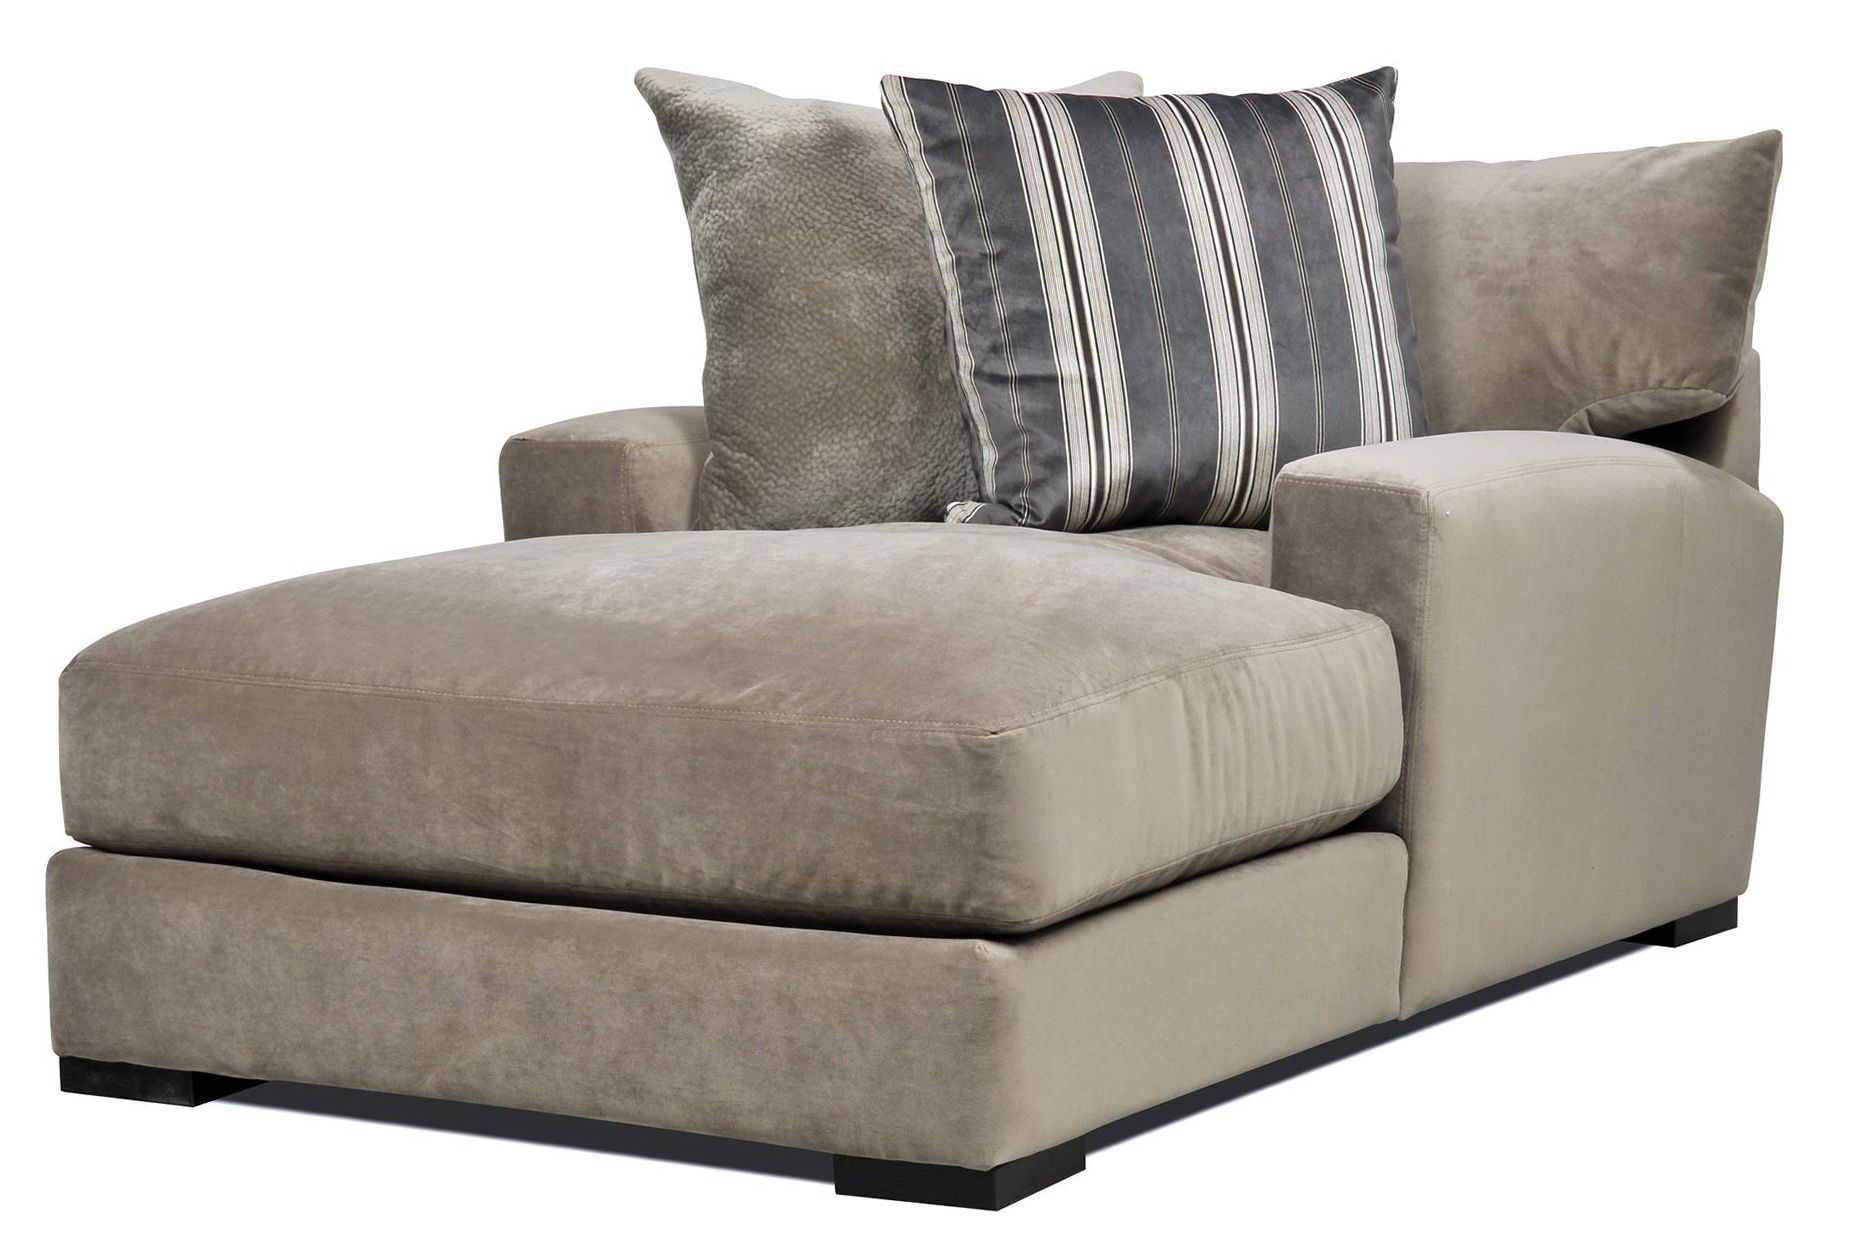 Double Wide Chaise Lounge Indoor With 2 Cushions | Chaise ...